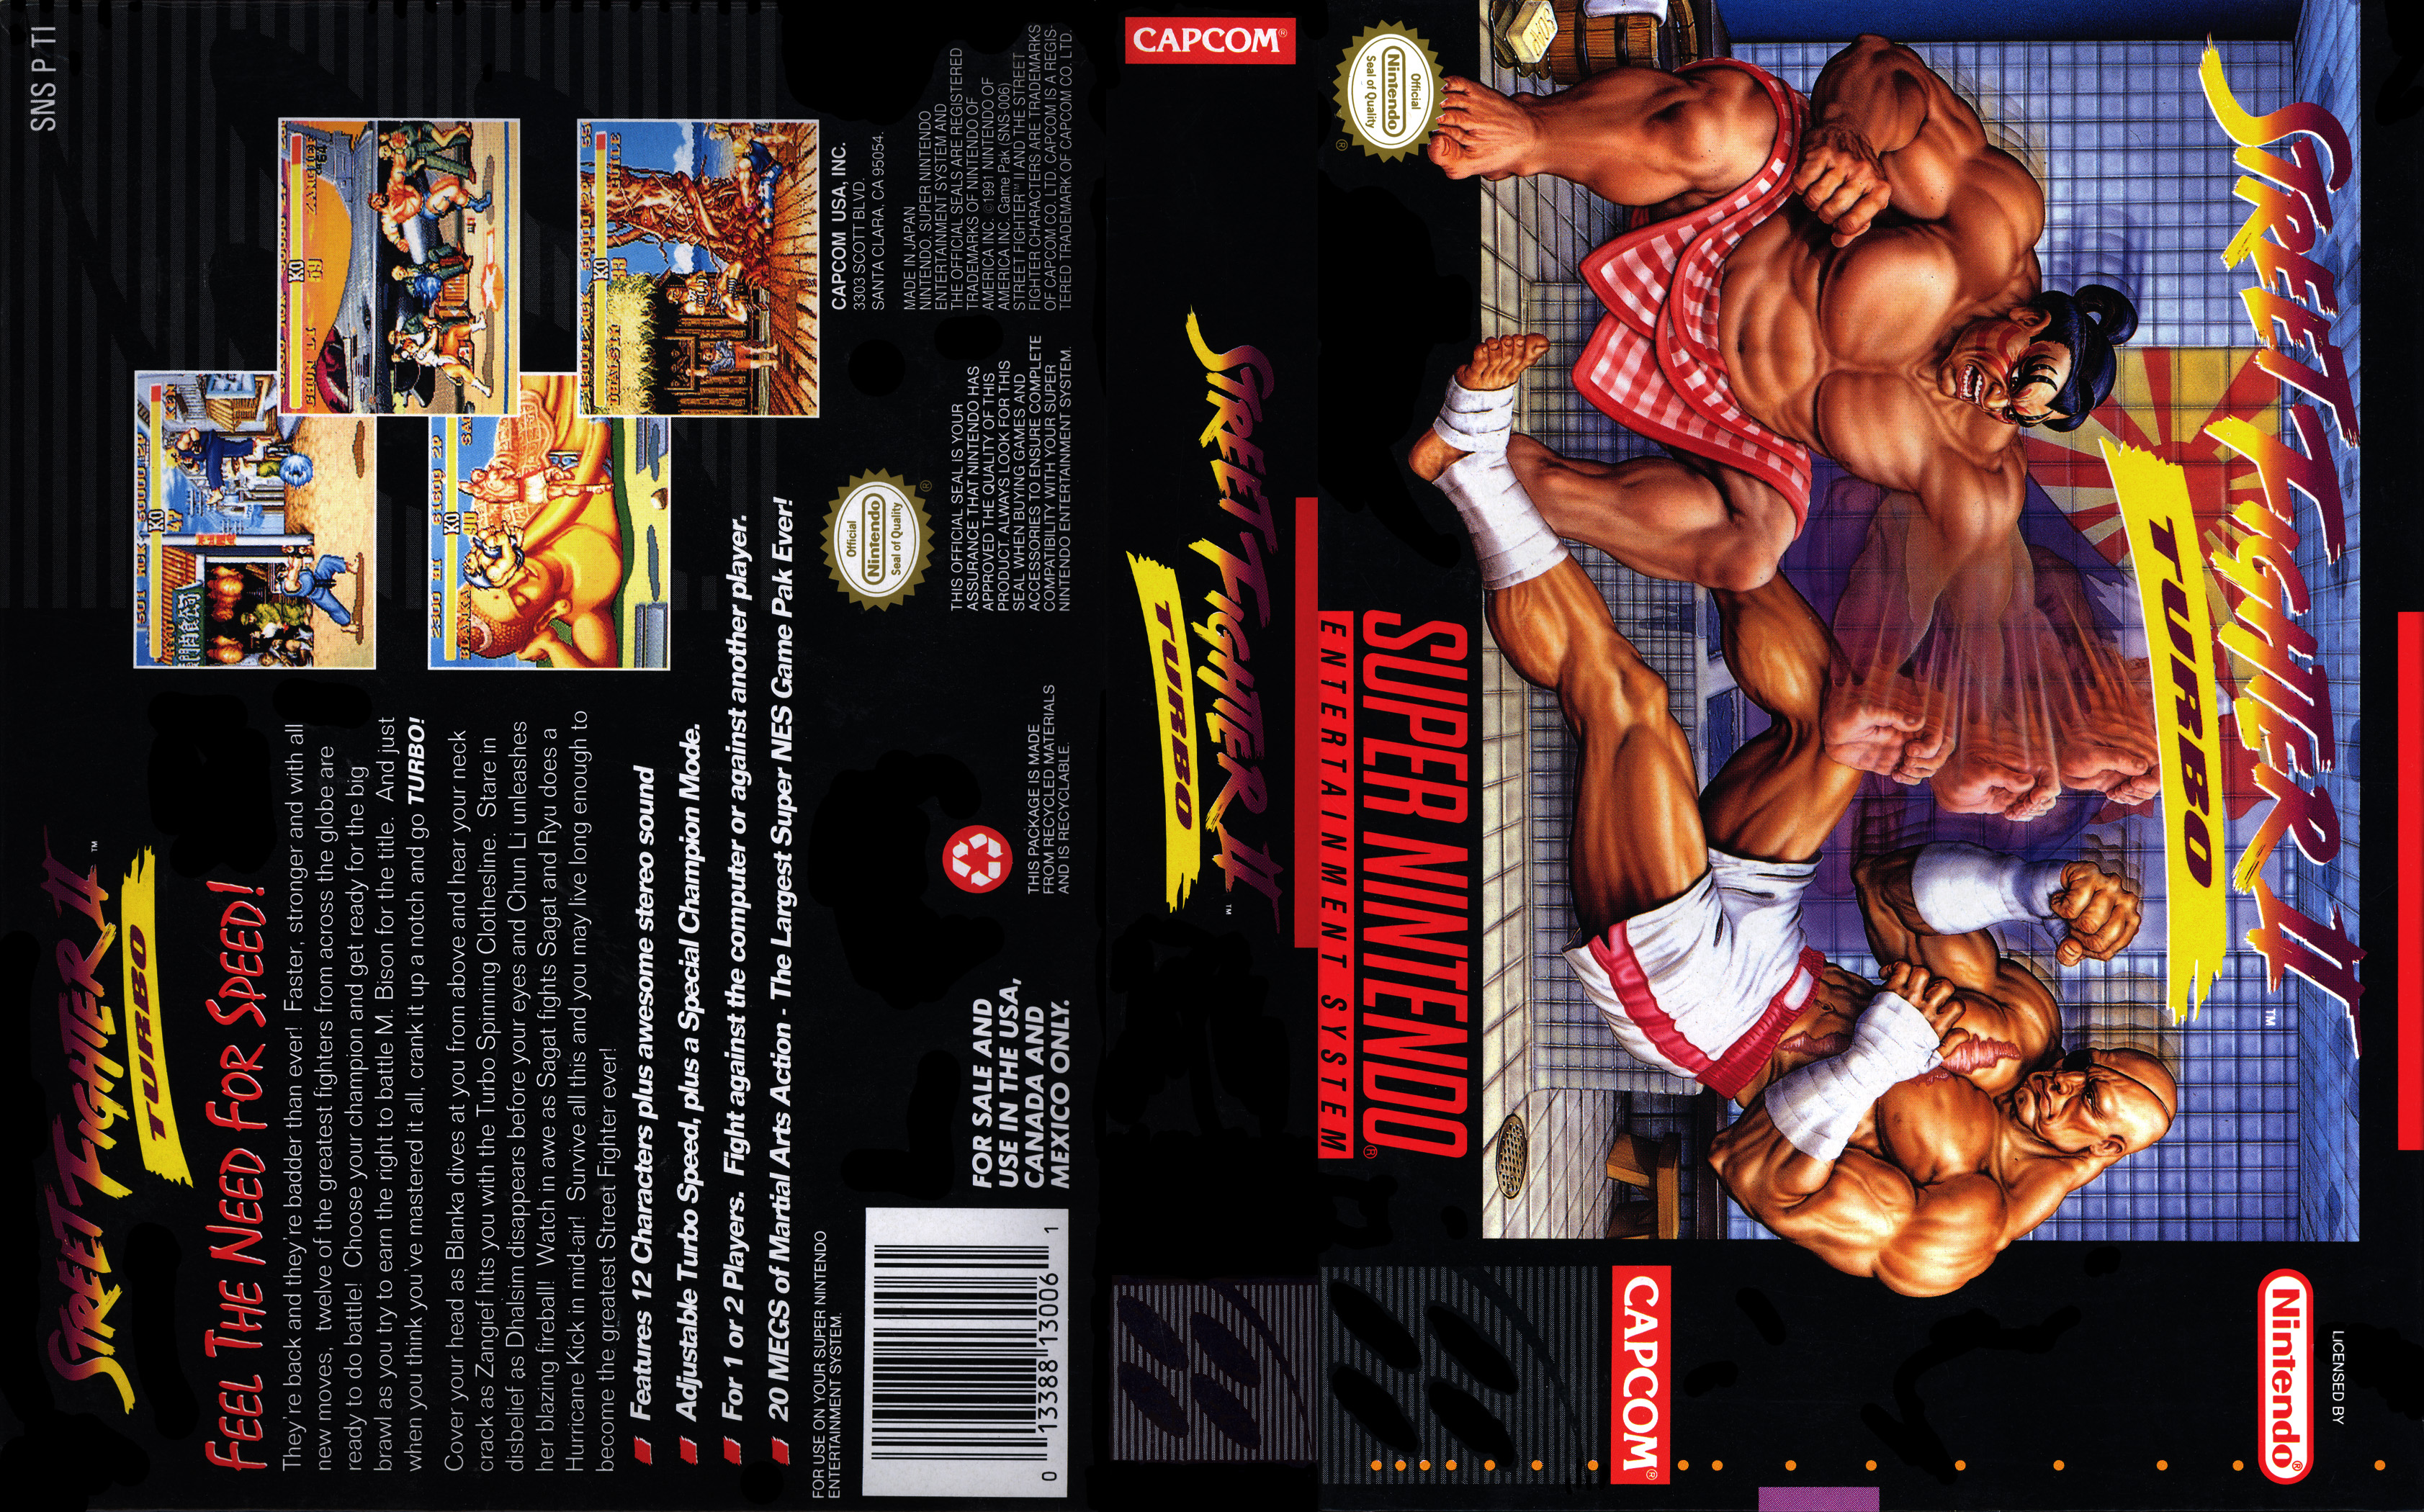 Streetfighter Ii Turbo Super Nintendo Covers Cover Century Over 500 000 Album Art Covers For Free